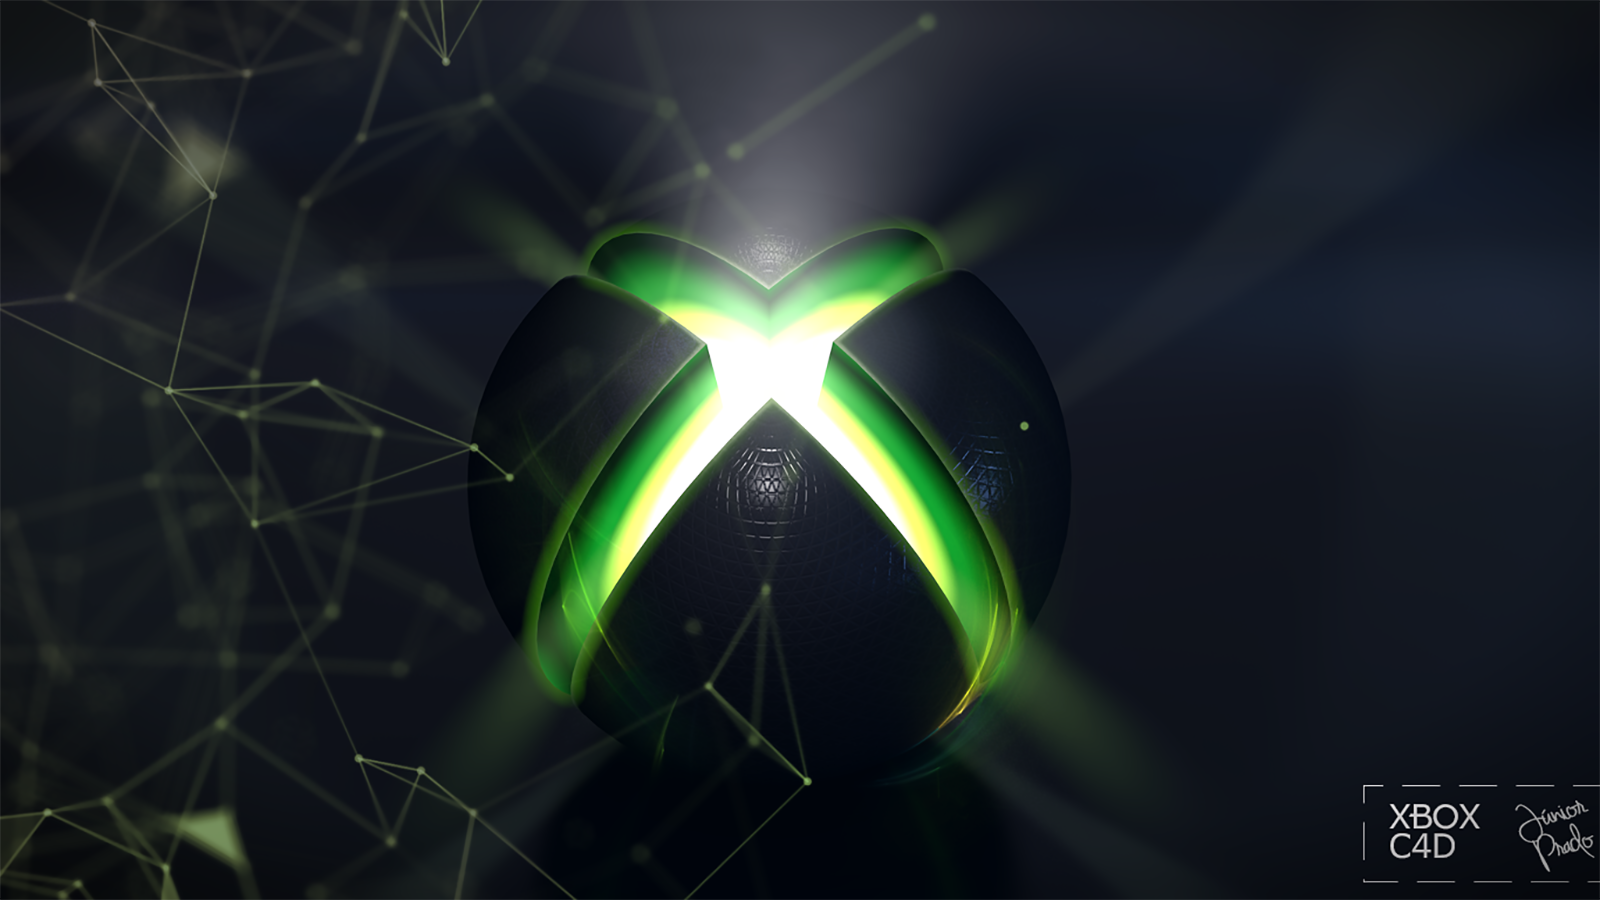 Xbox one 3d cinema 4d wallpaper games 2017 wallpaper and - Xbox one wallpaper 1920x1080 ...